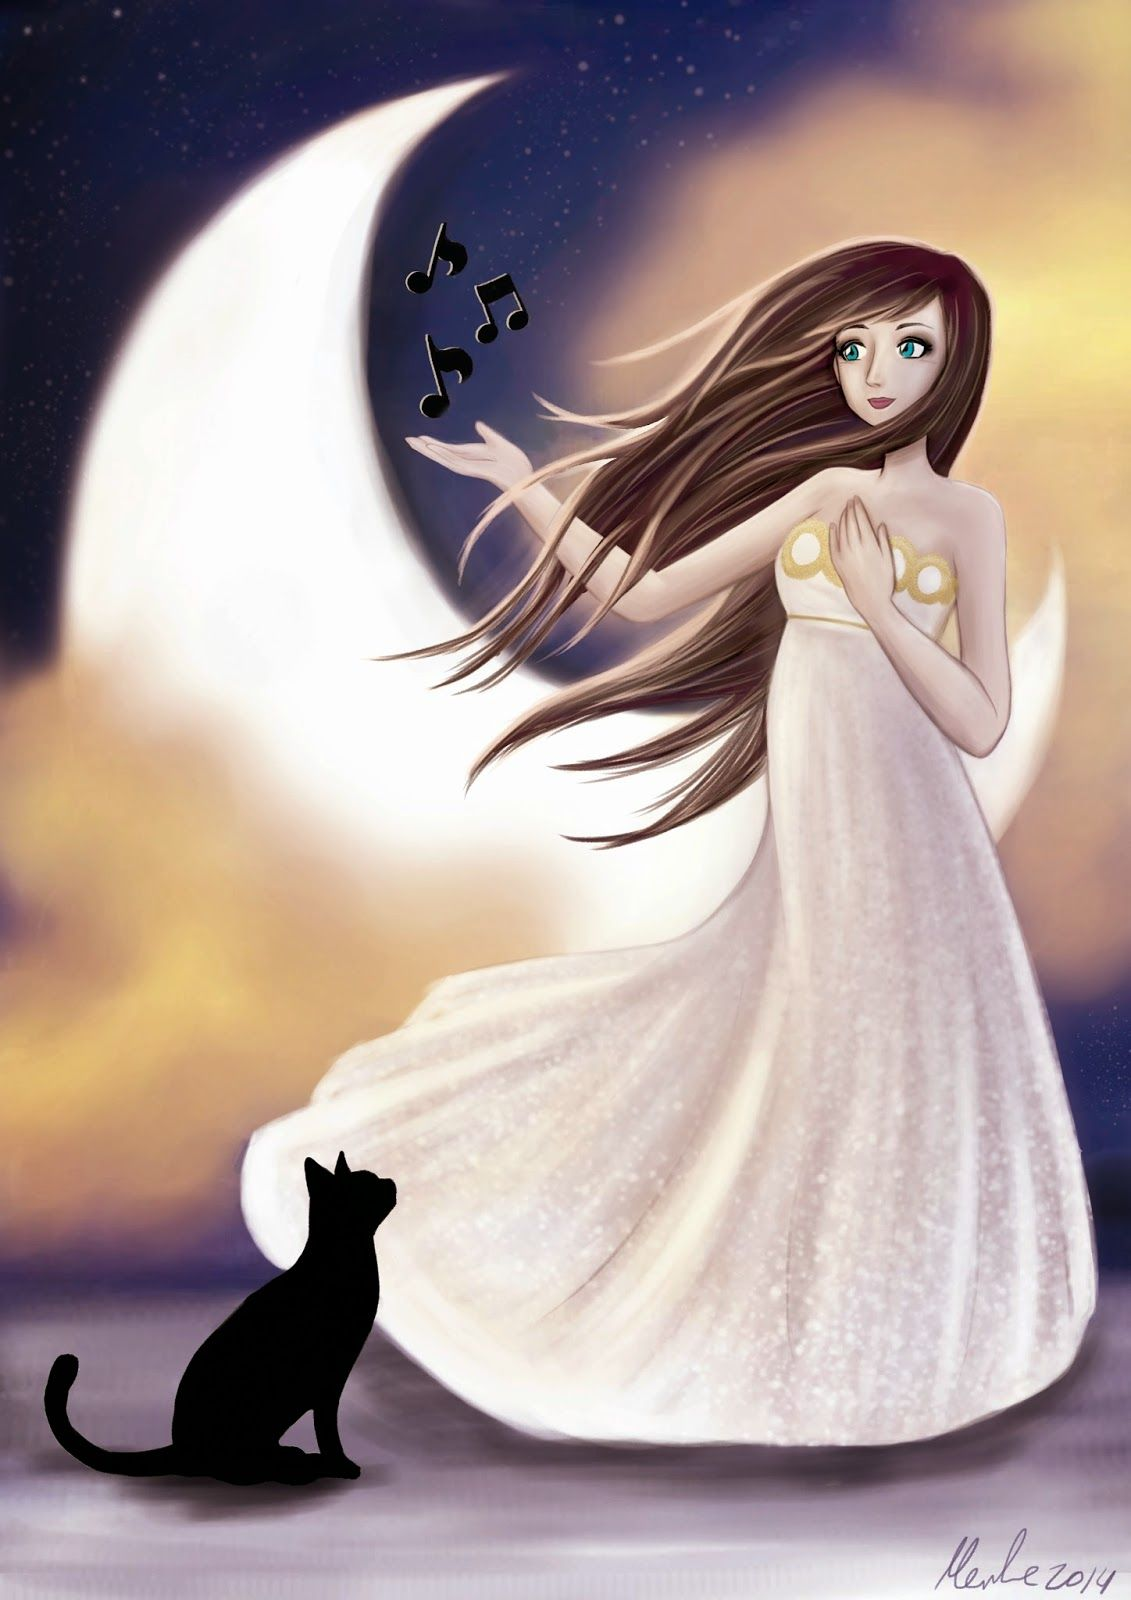 Merche Moreno Ilustración y Diseño: The girl and the moon